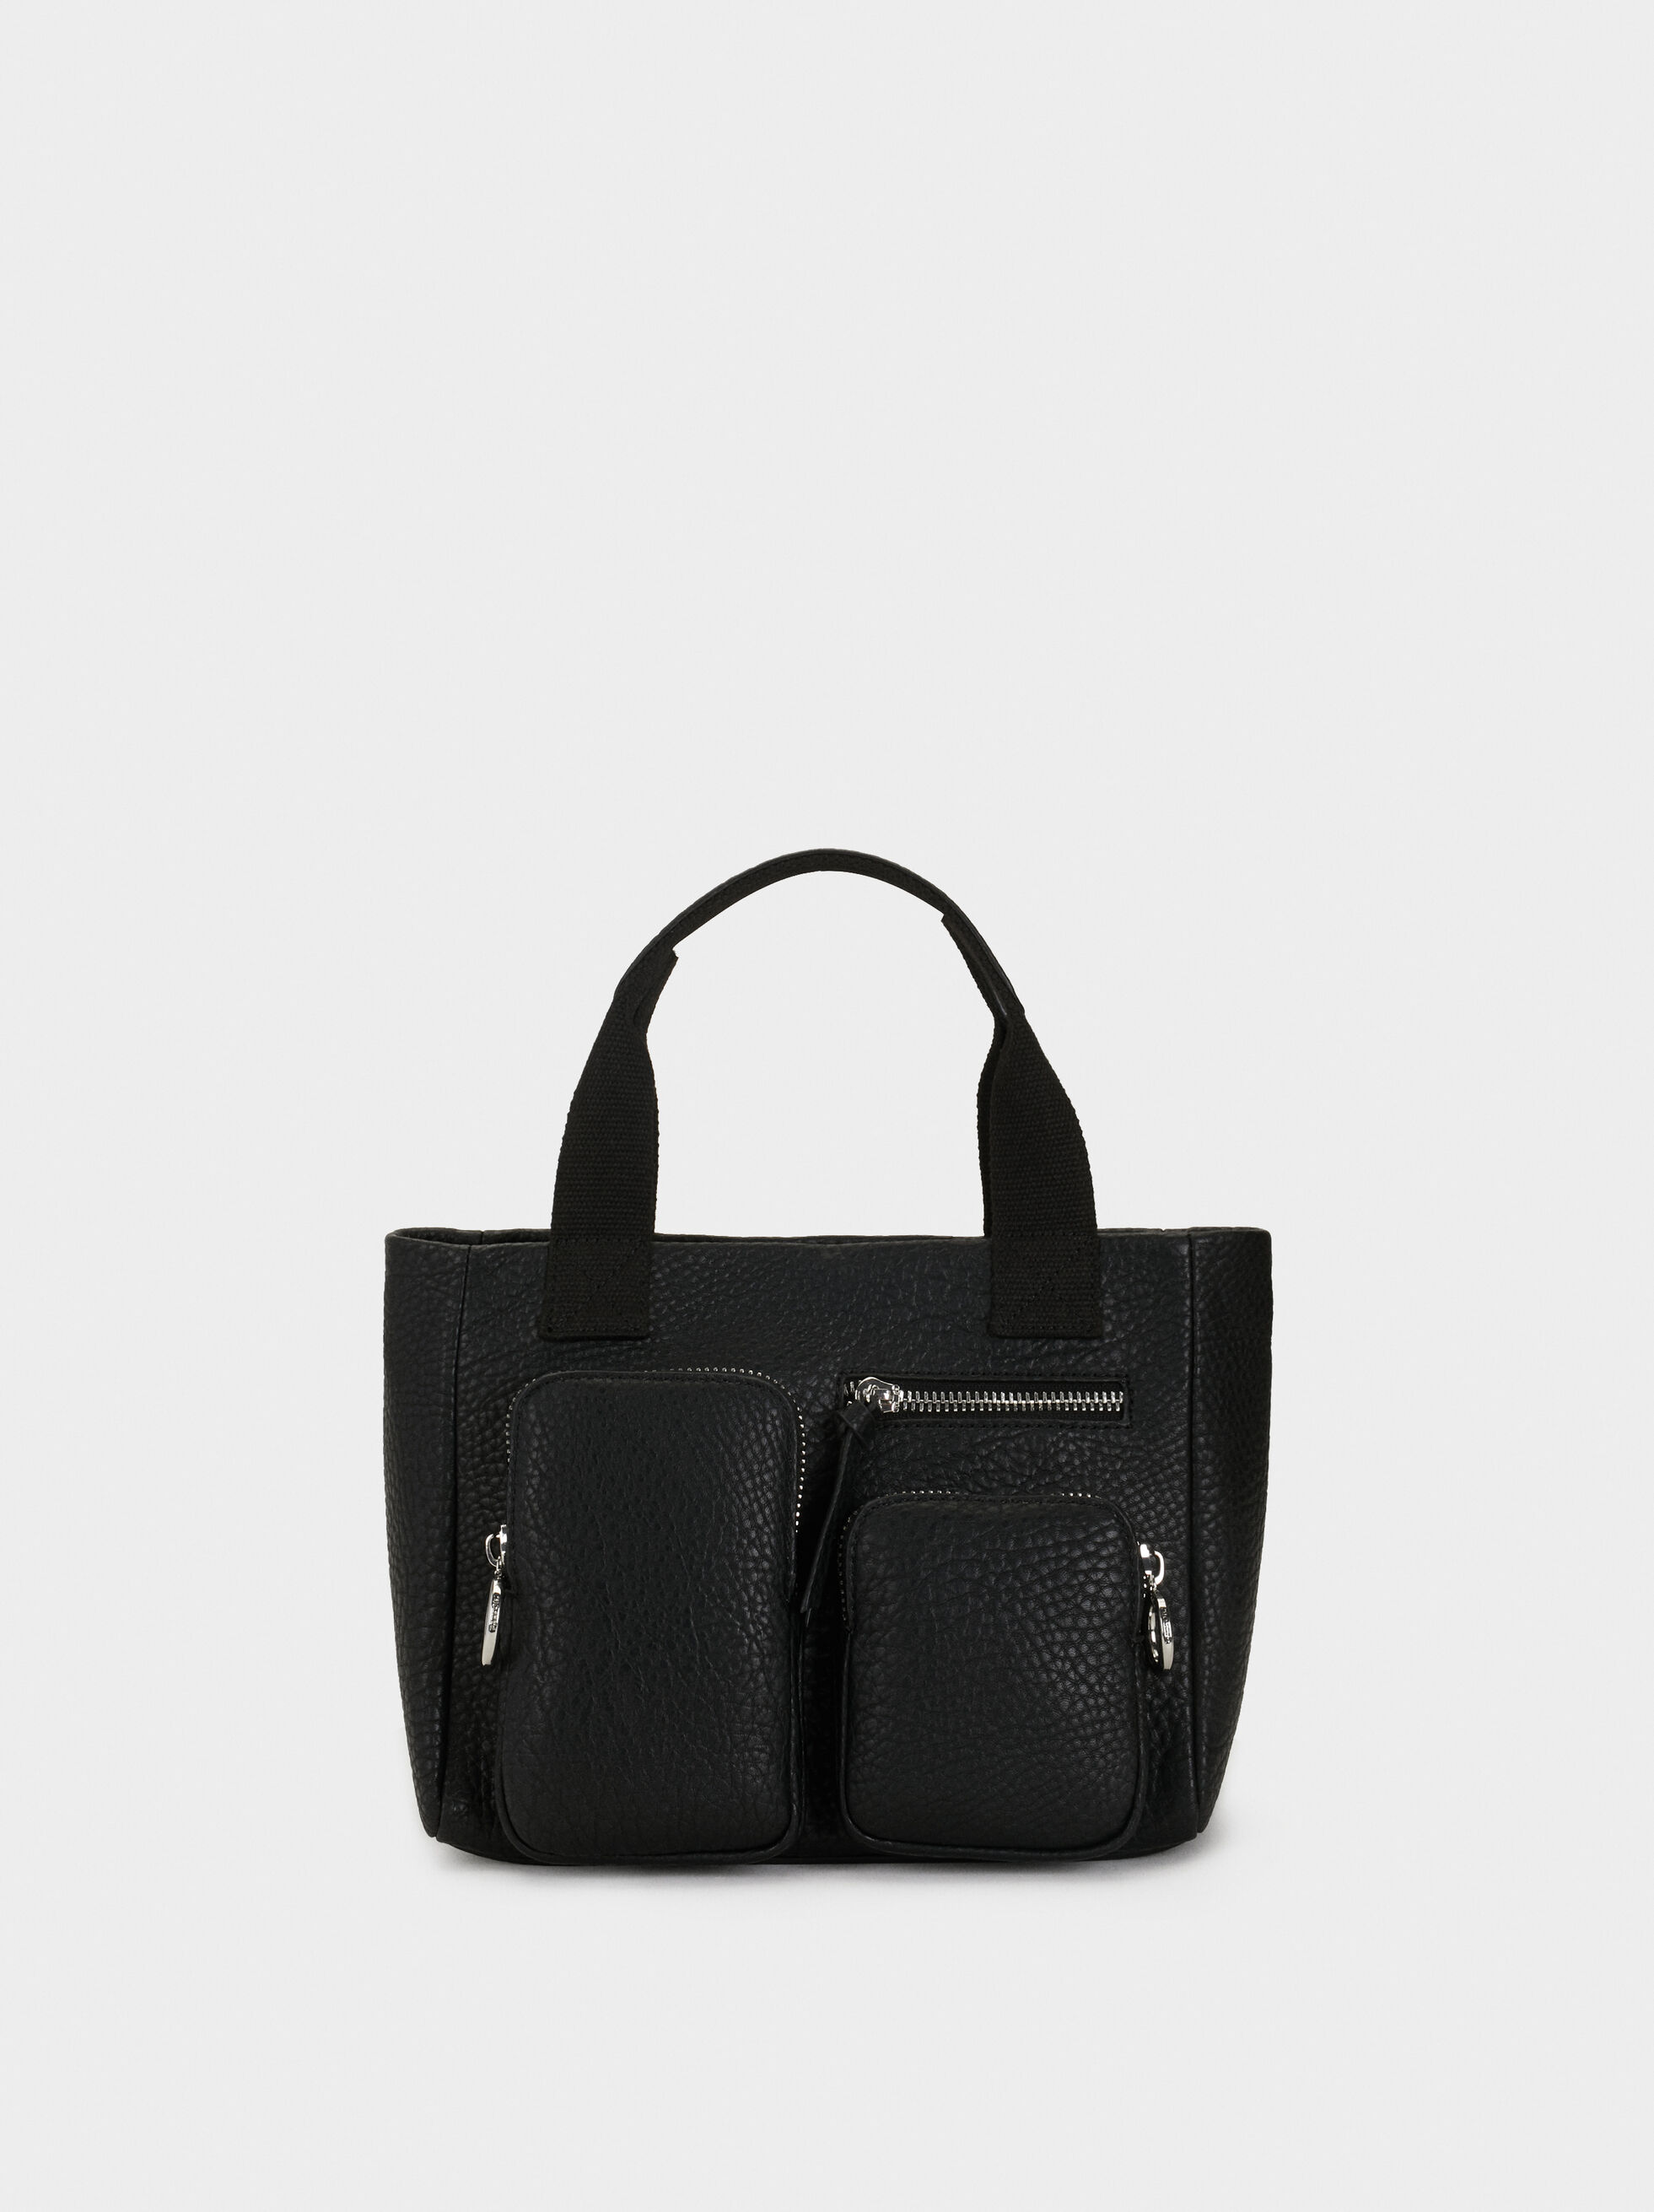 Tote Bag With Pockets, , hi-res